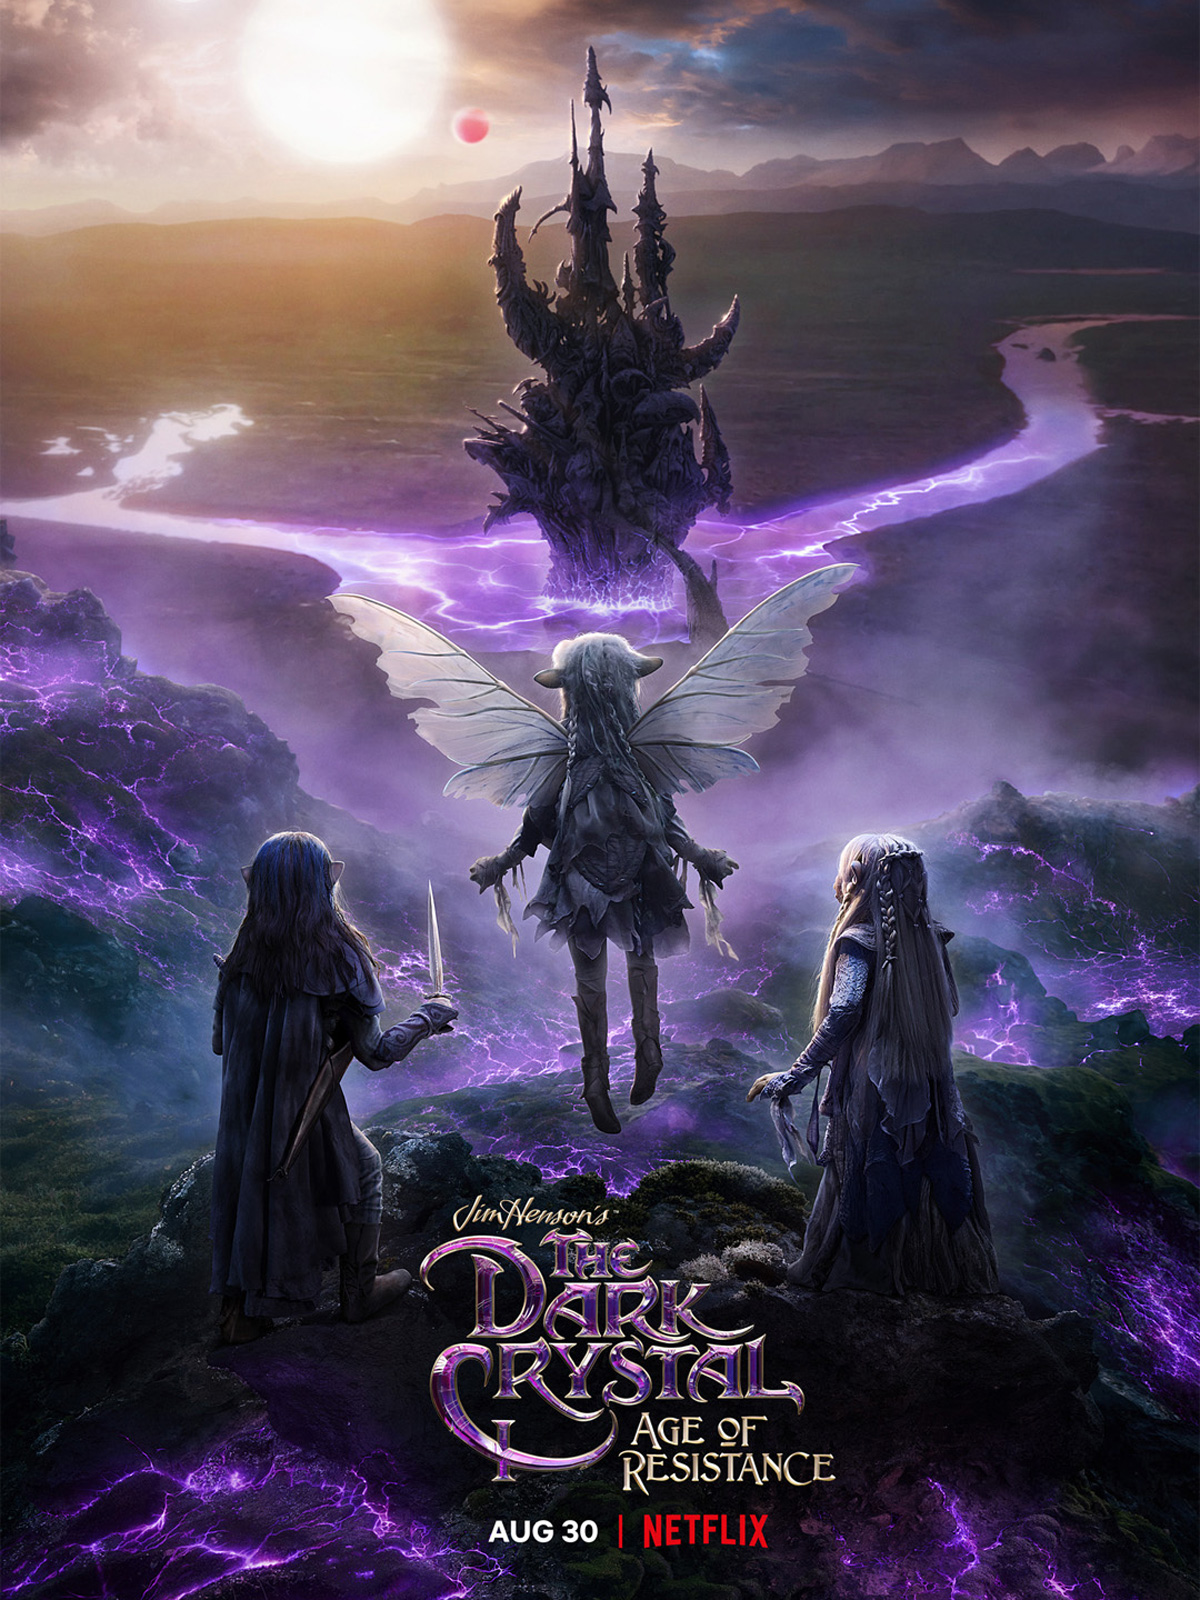 30 - The Dark Crystal: Age of Resistance